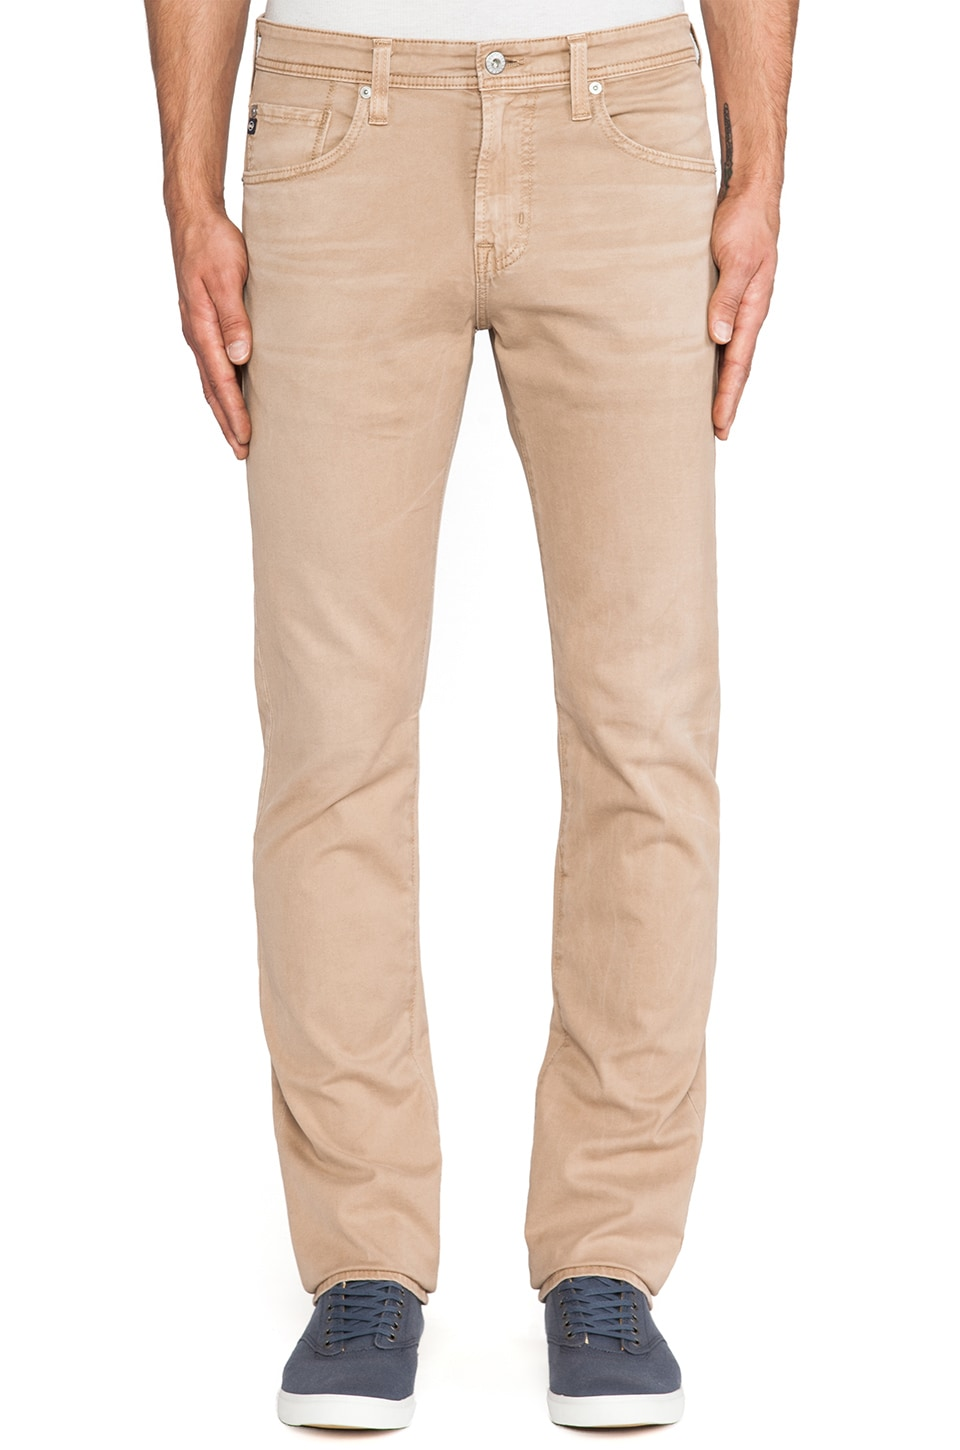 AG Adriano Goldschmied The Matchbox in Sulfur Willow Beige